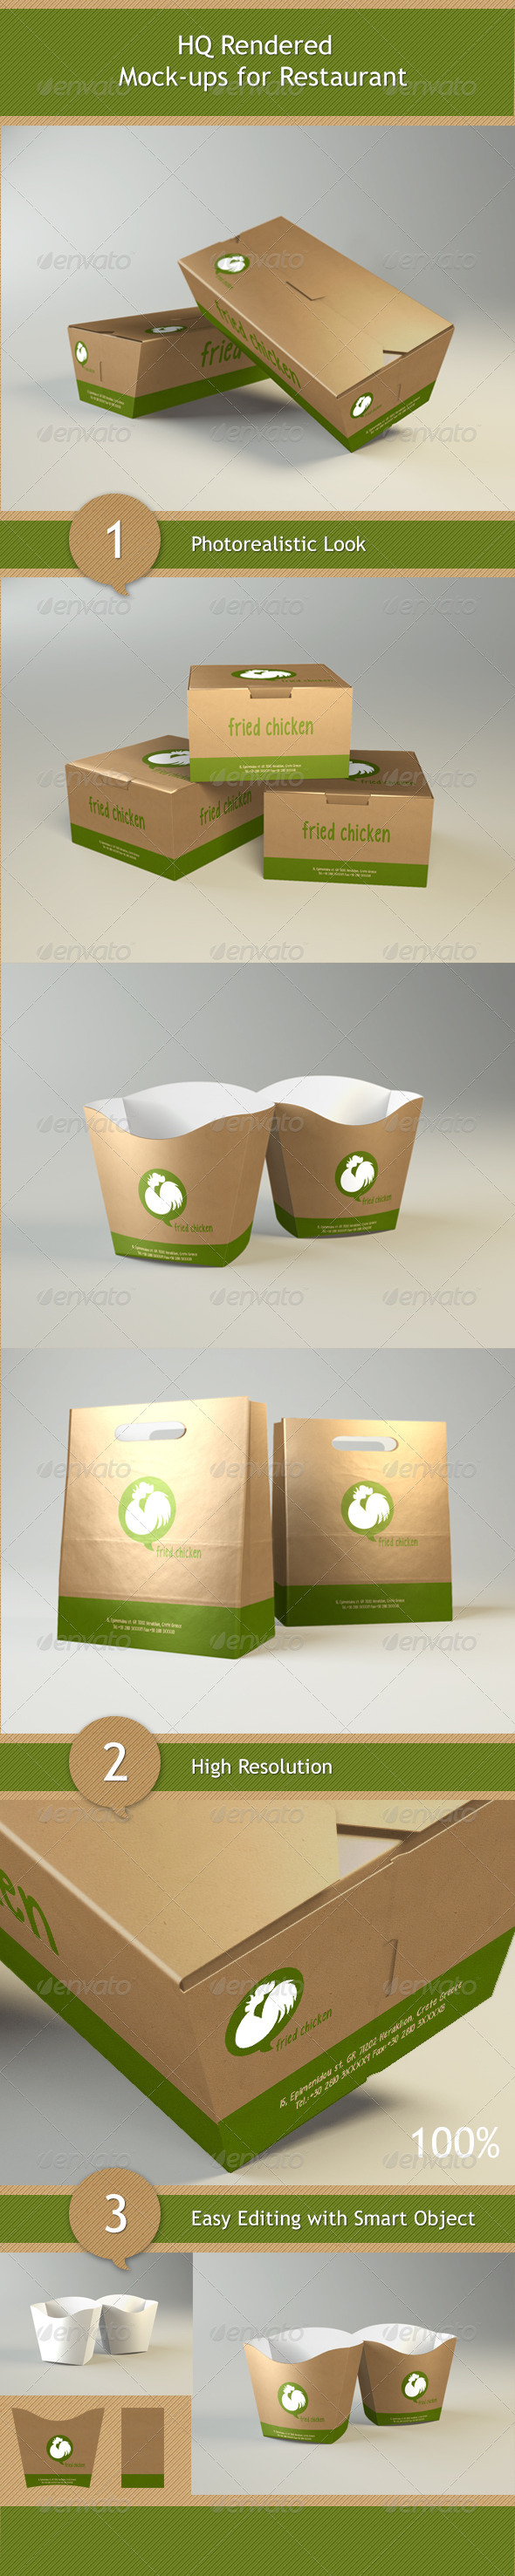 Mock-ups for Restaurant - GraphicRiver Item for Sale